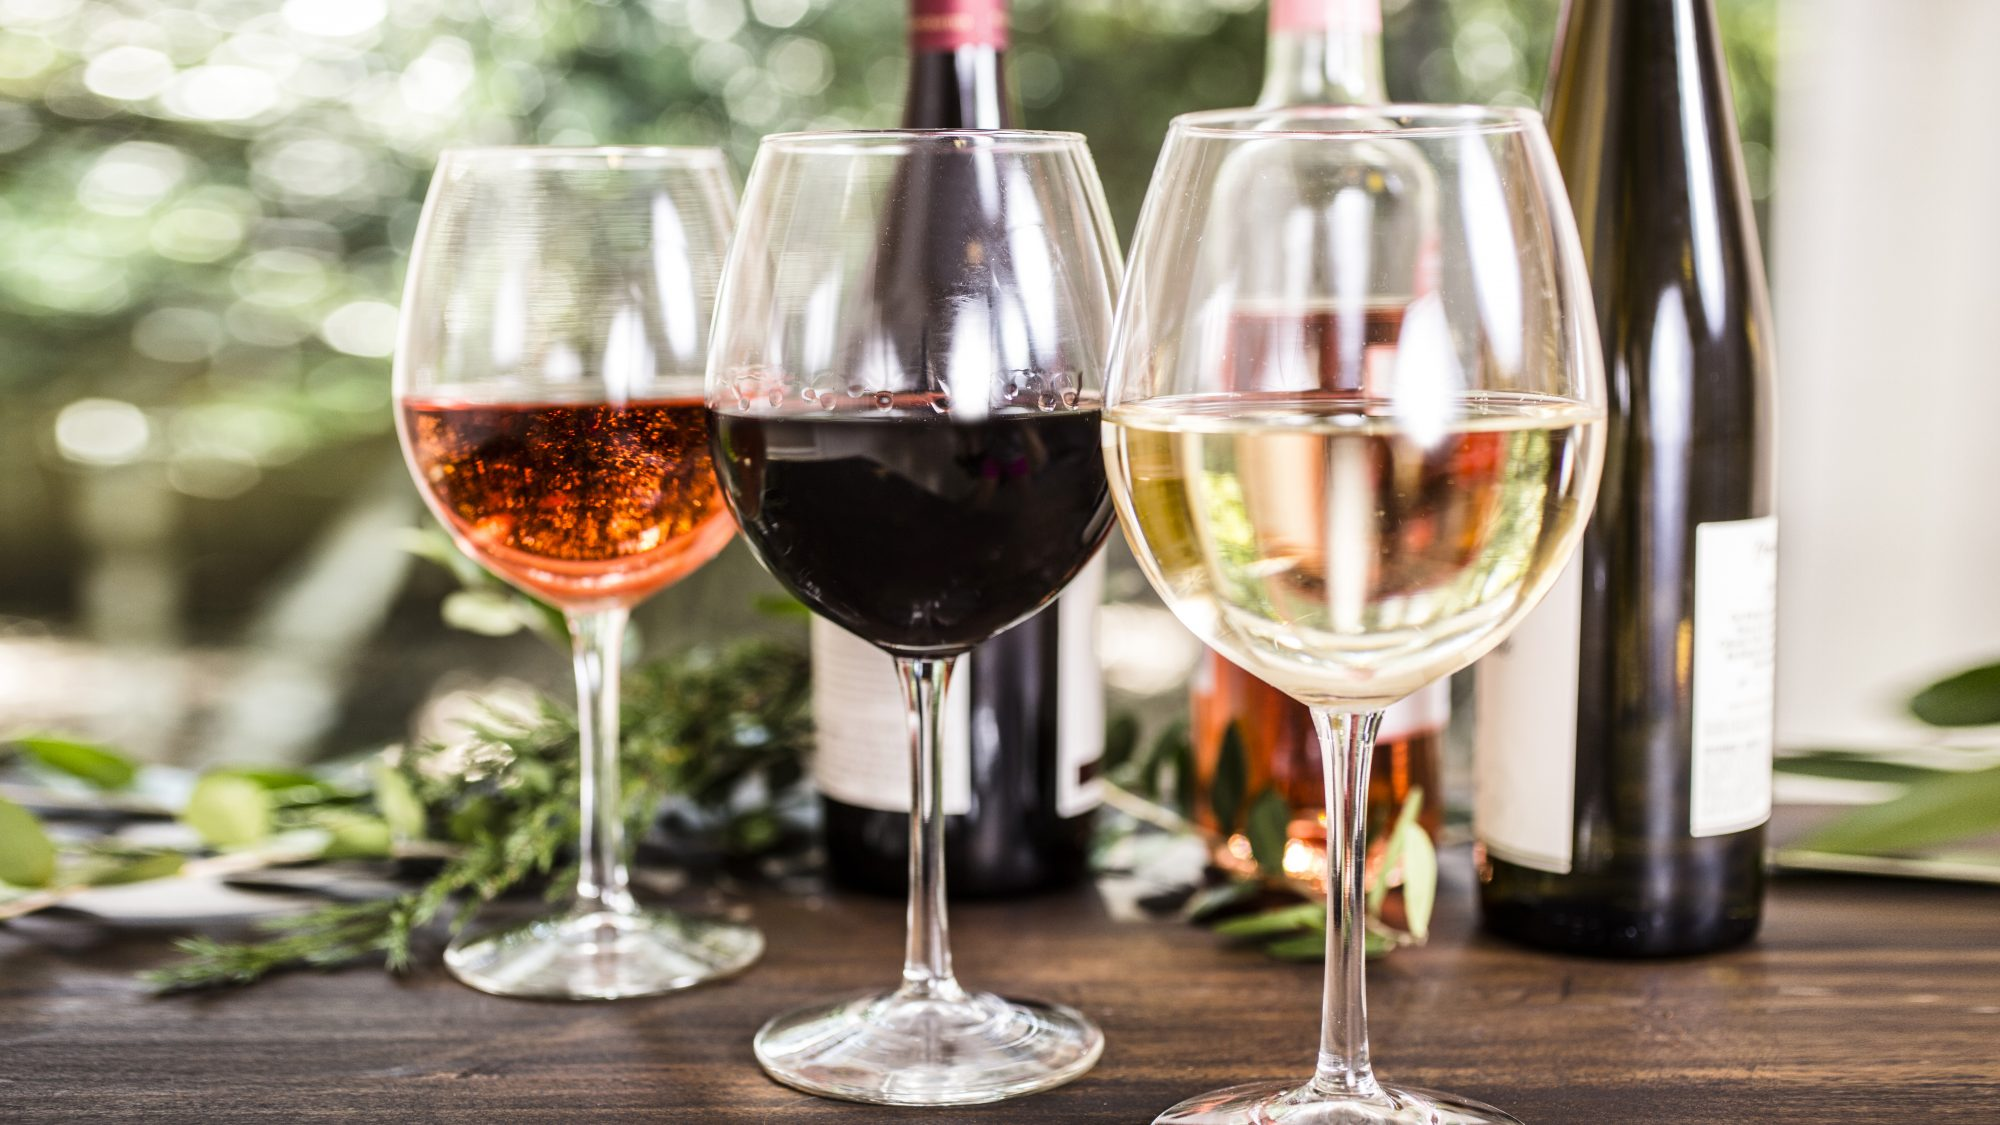 Healthiest-wines-to-drink